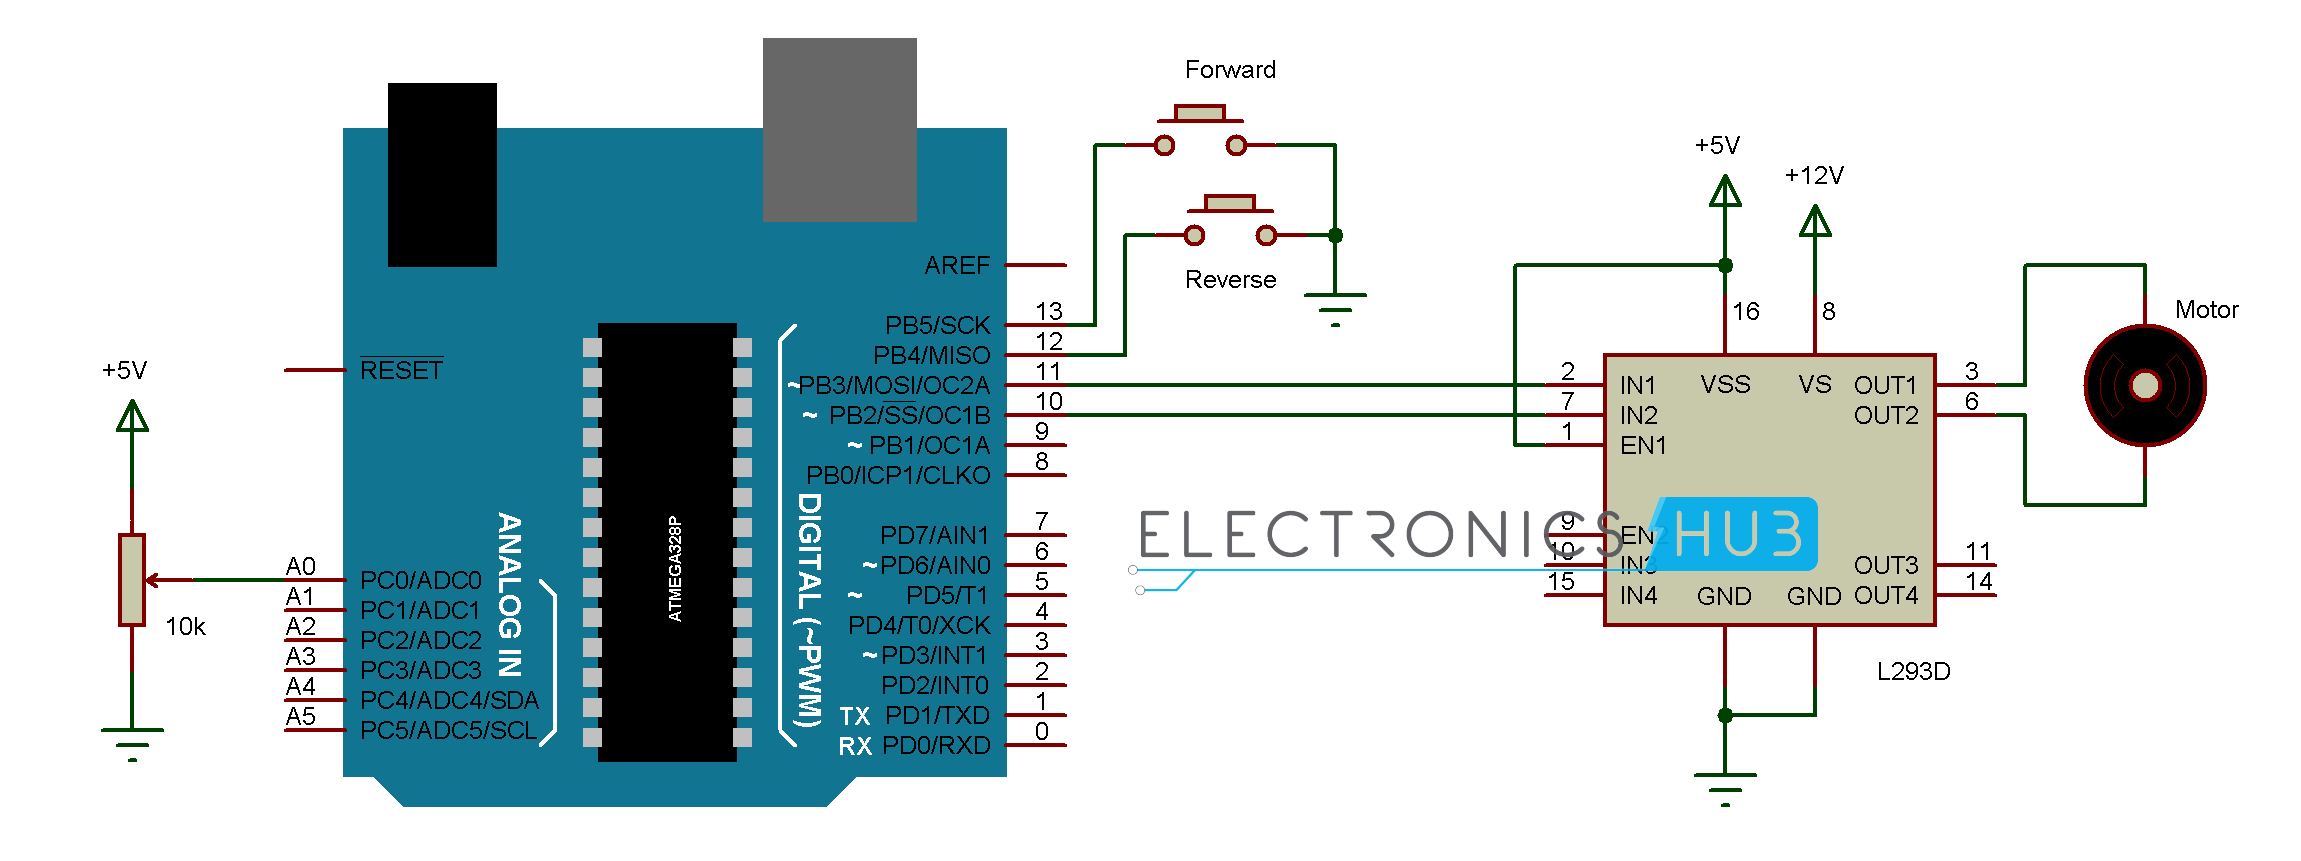 wiring diagram of motor control major arteries and veins dc with arduino